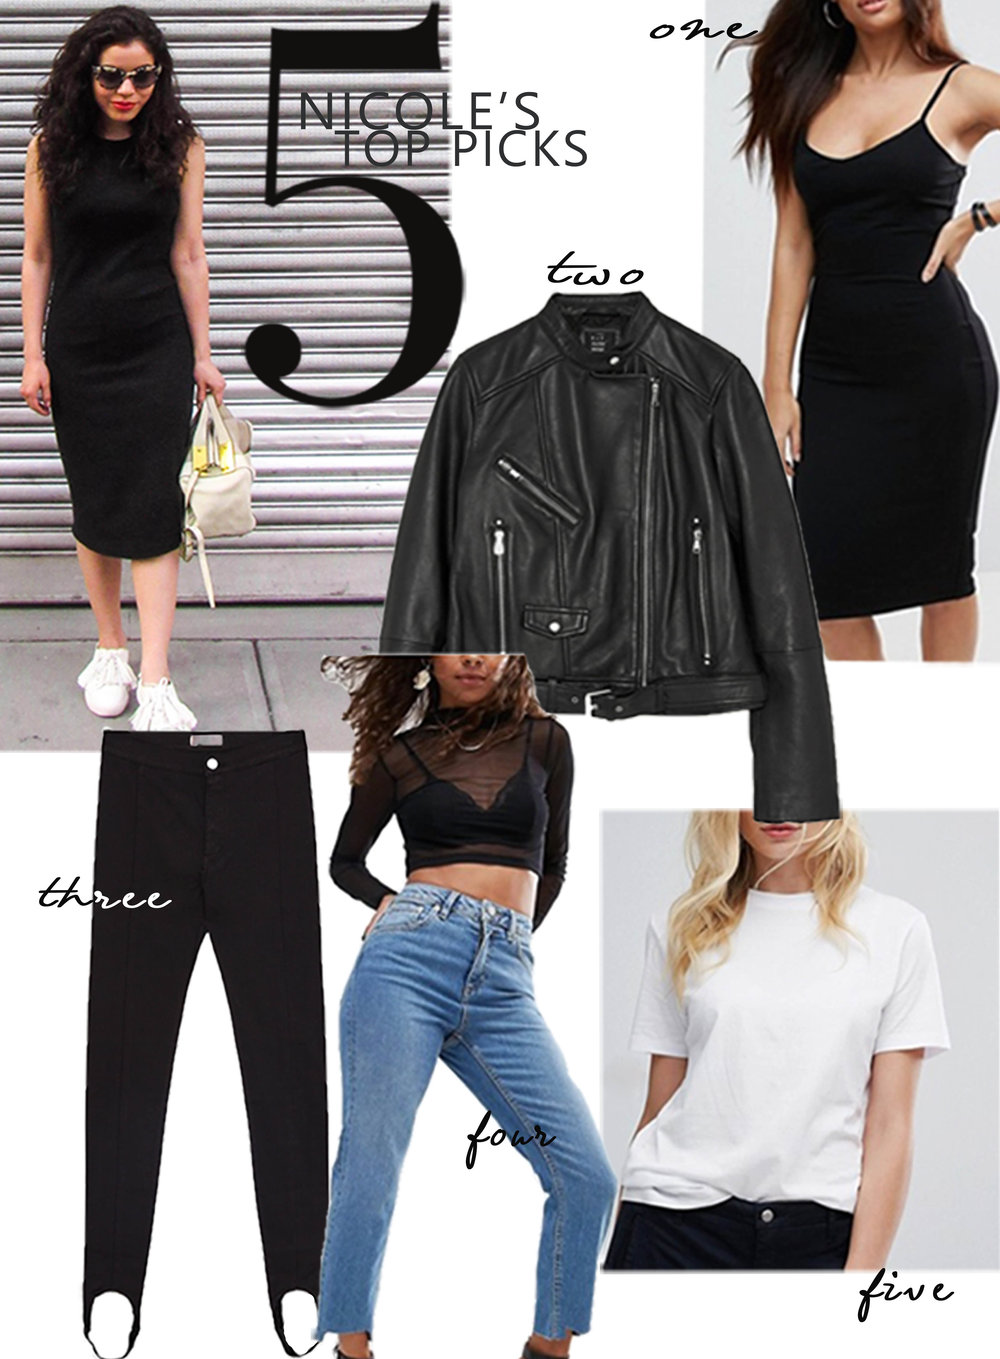 1.LBD 2. jacket 3.black jeans 4.jeans 5. t-shirt